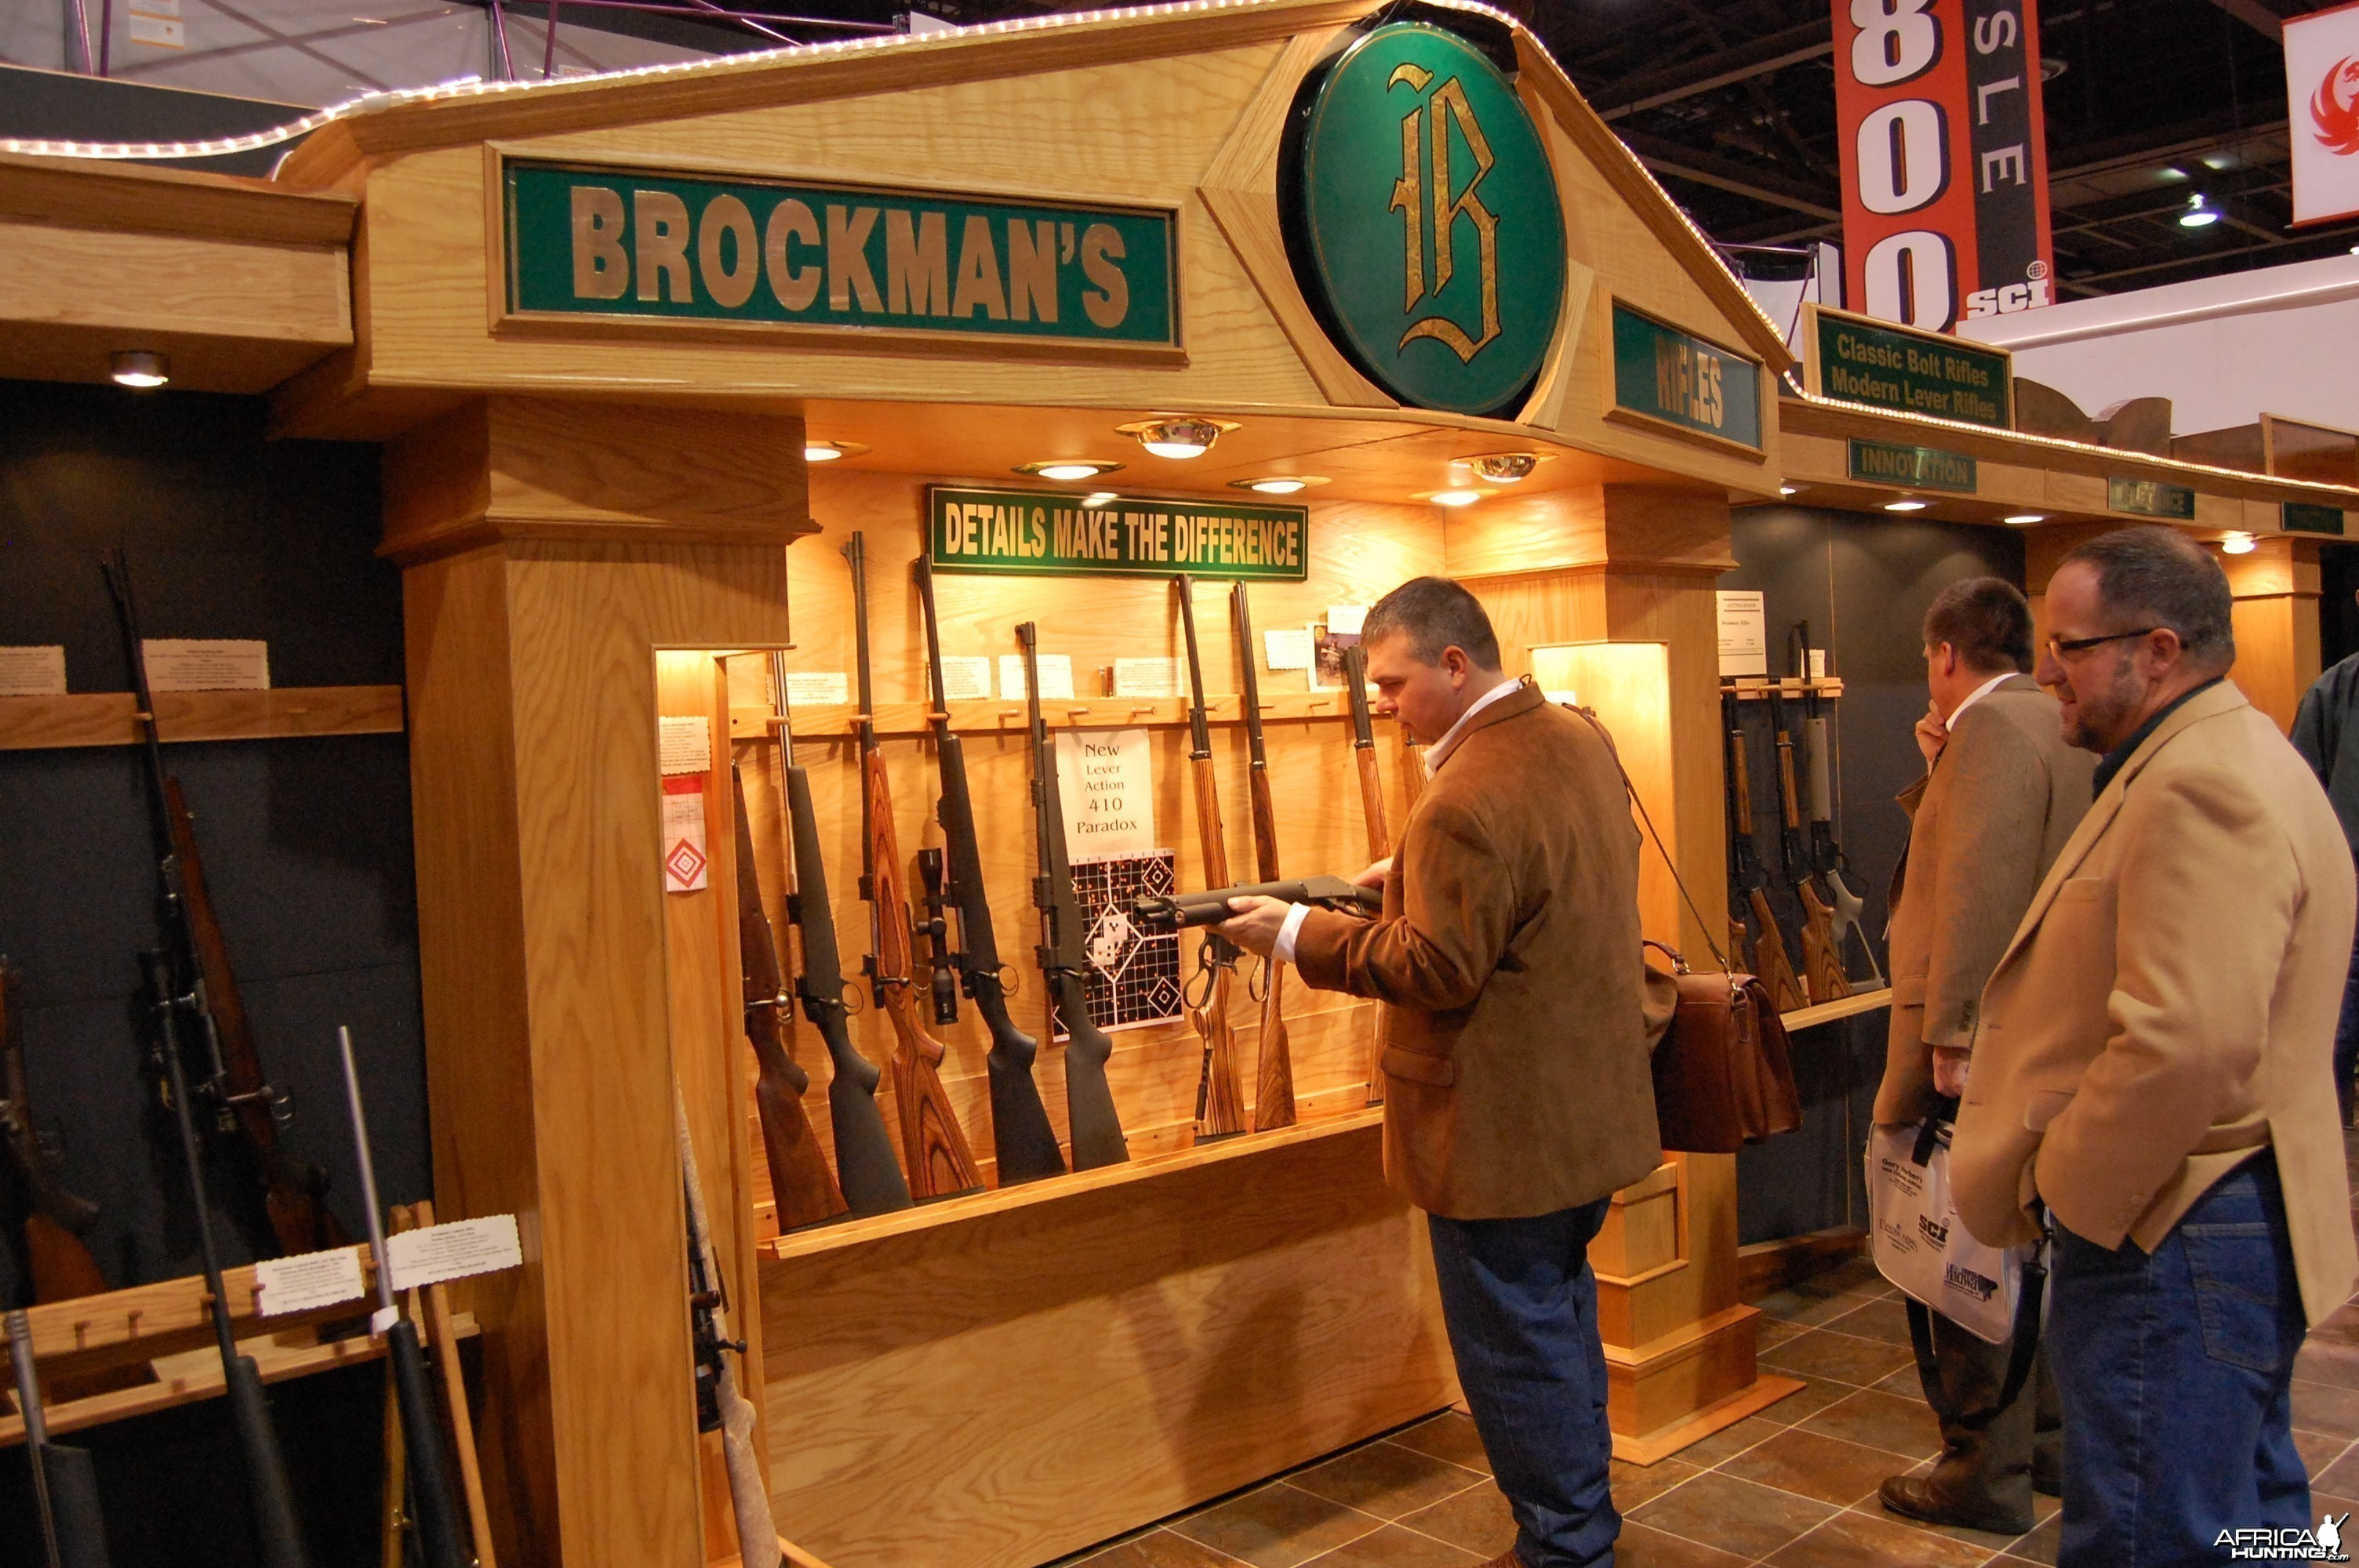 Brockman's Firearms